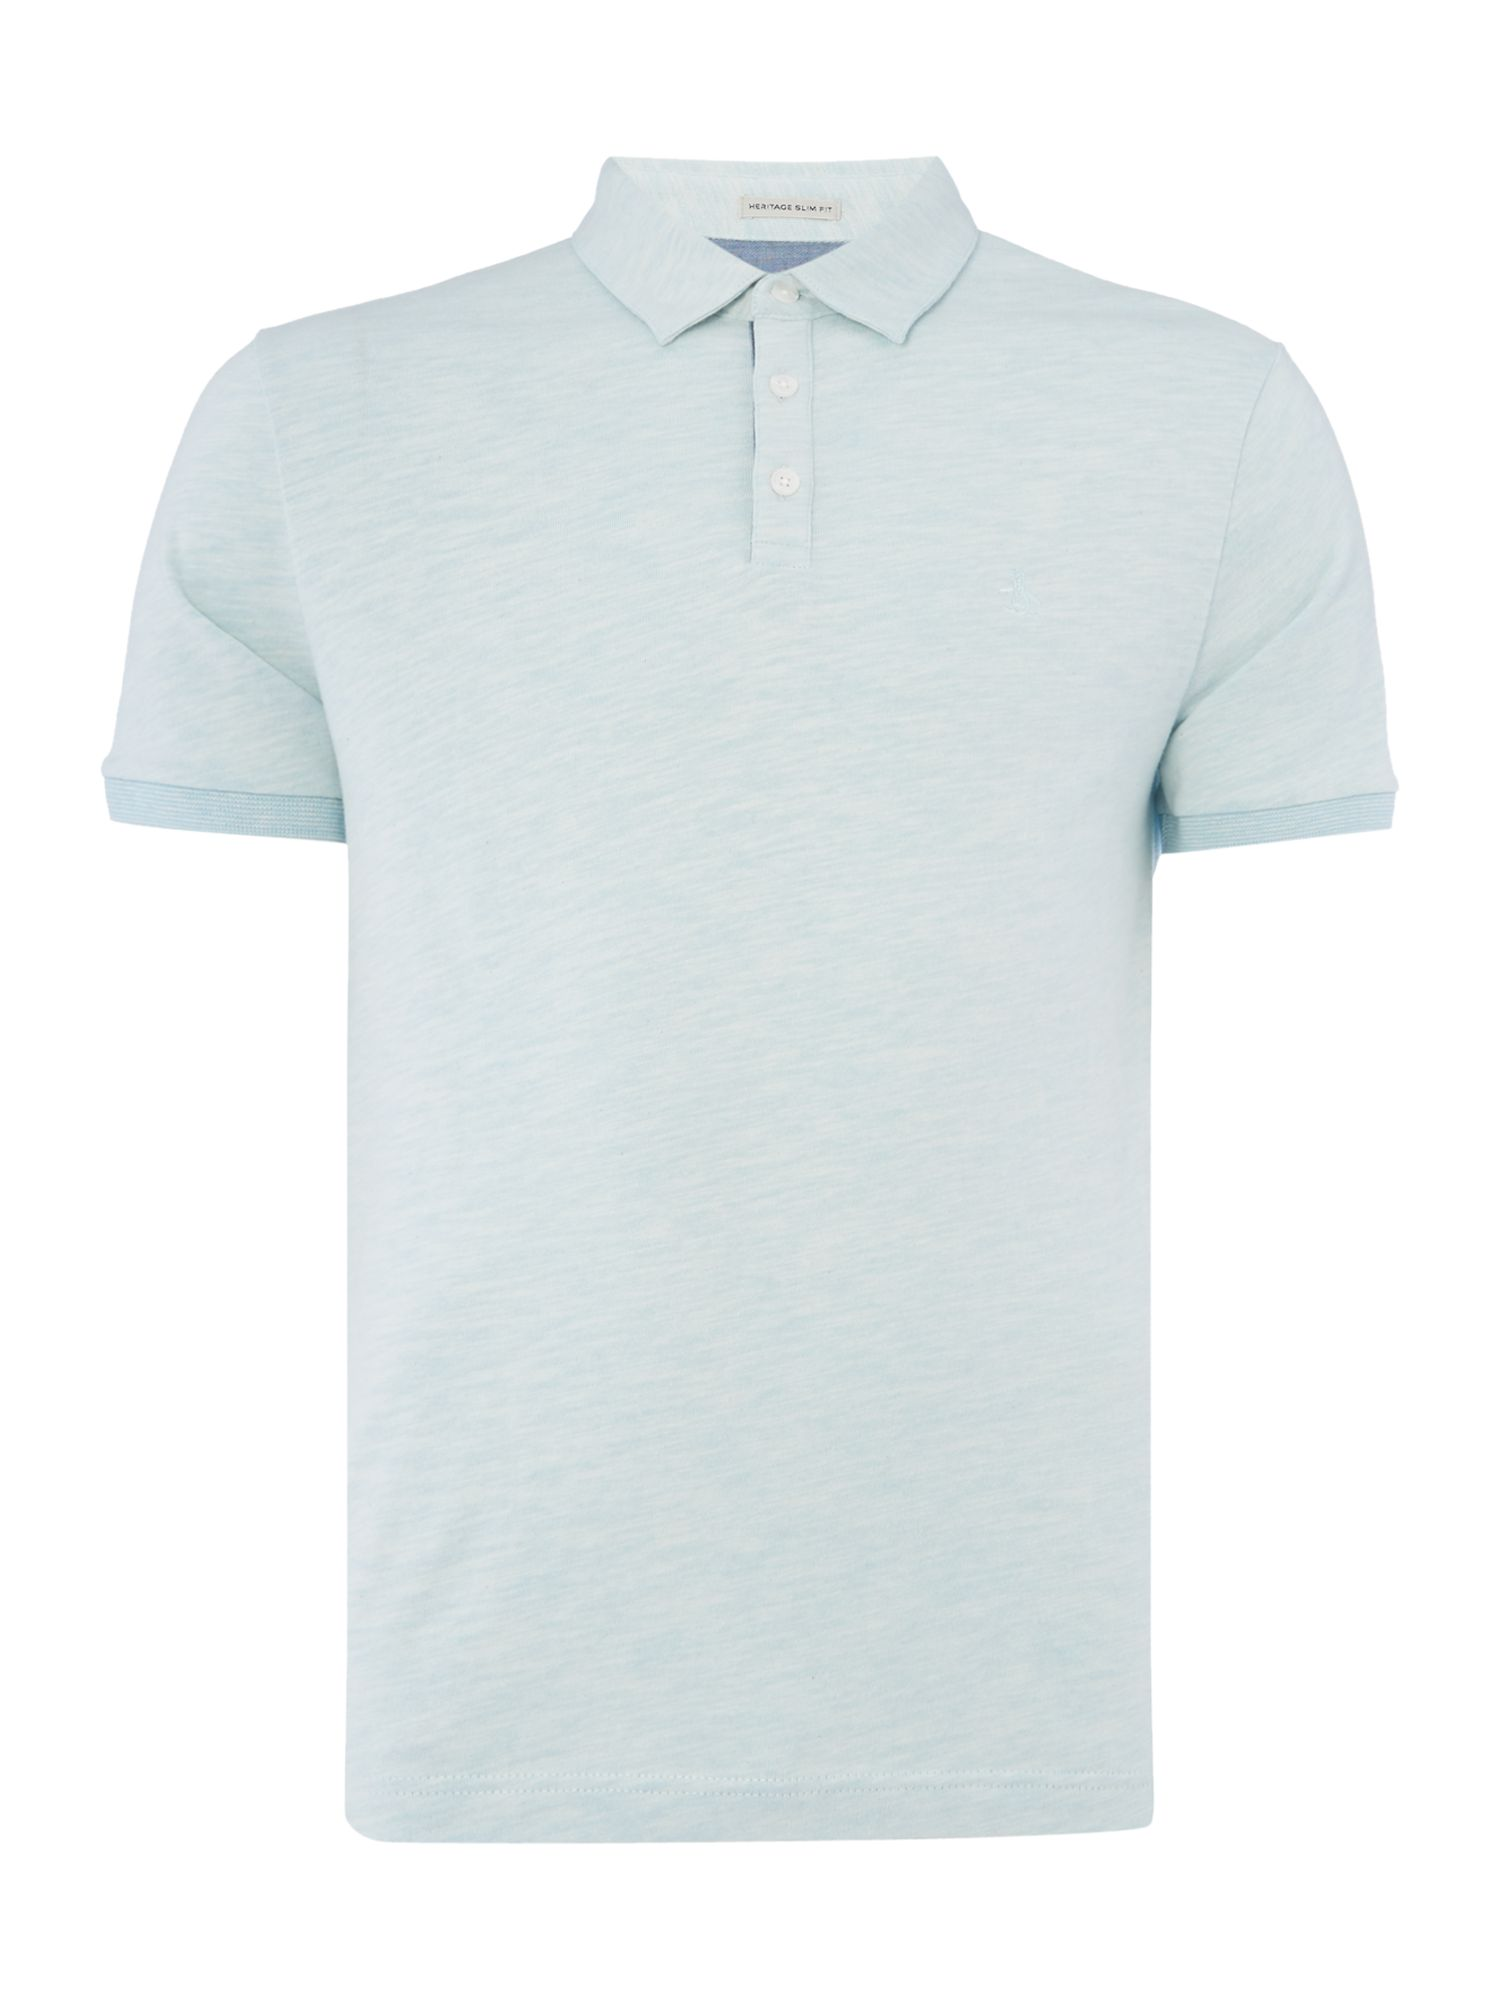 Men's Original Penguin Slub Jersey Polo Shirt, Light Blue